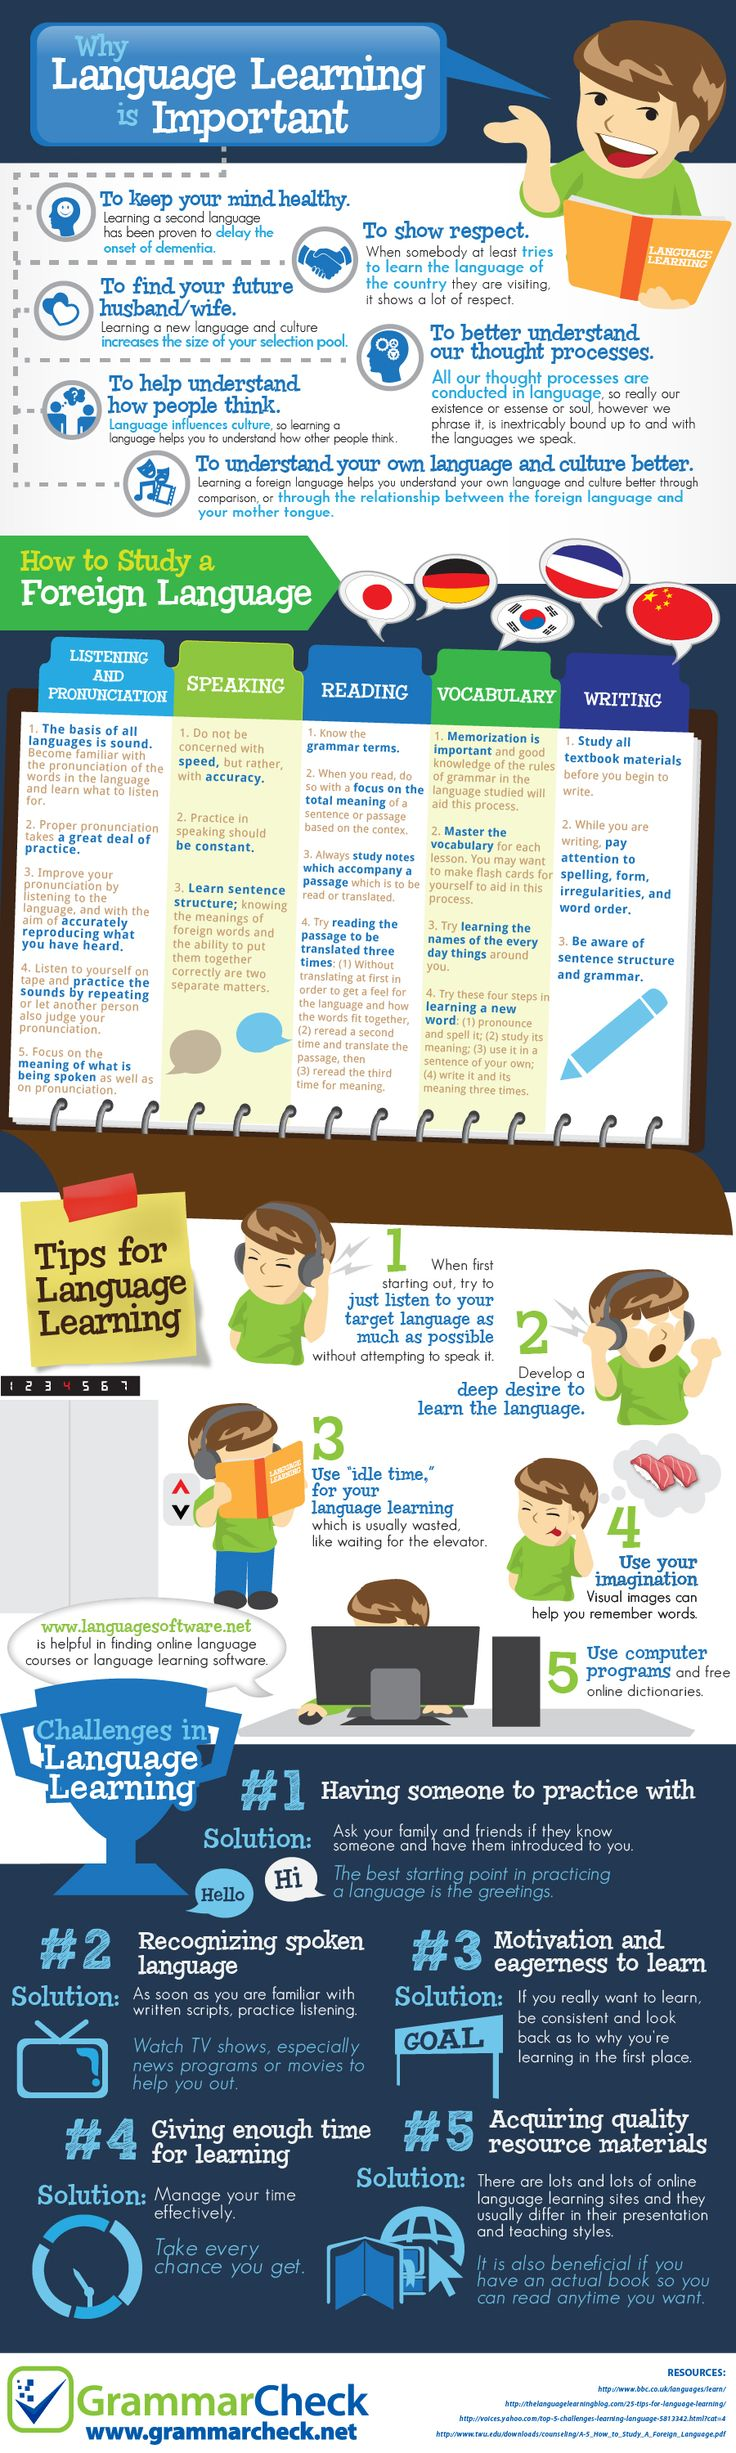 Why Language Learning is Important Infographic | Language Learning | Pinterest | Language, Learning and Learning spanish